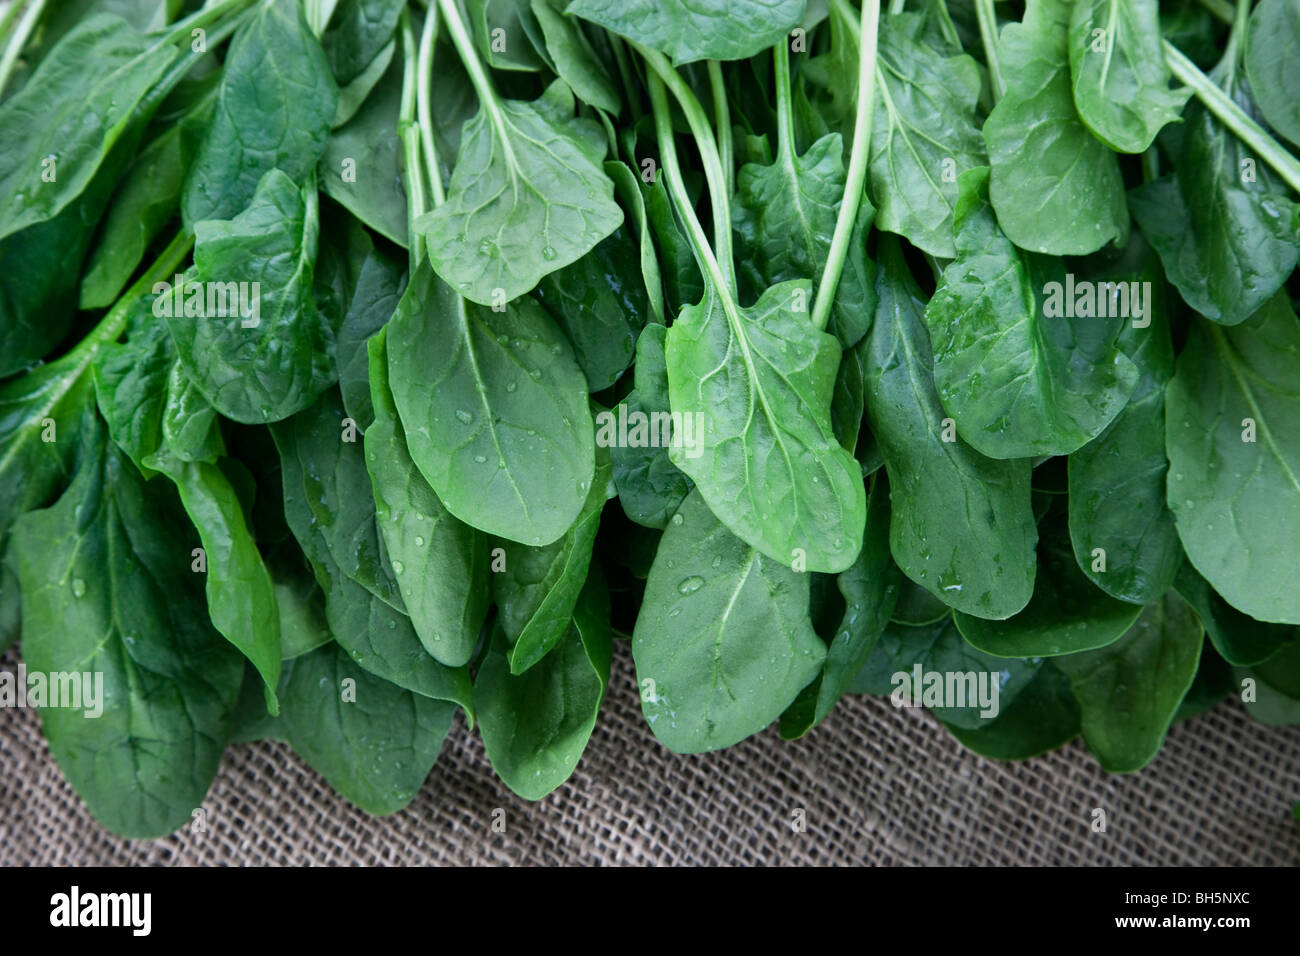 Harvested 'Baby Spinach' (Spinacia oleracea) Stock Photo